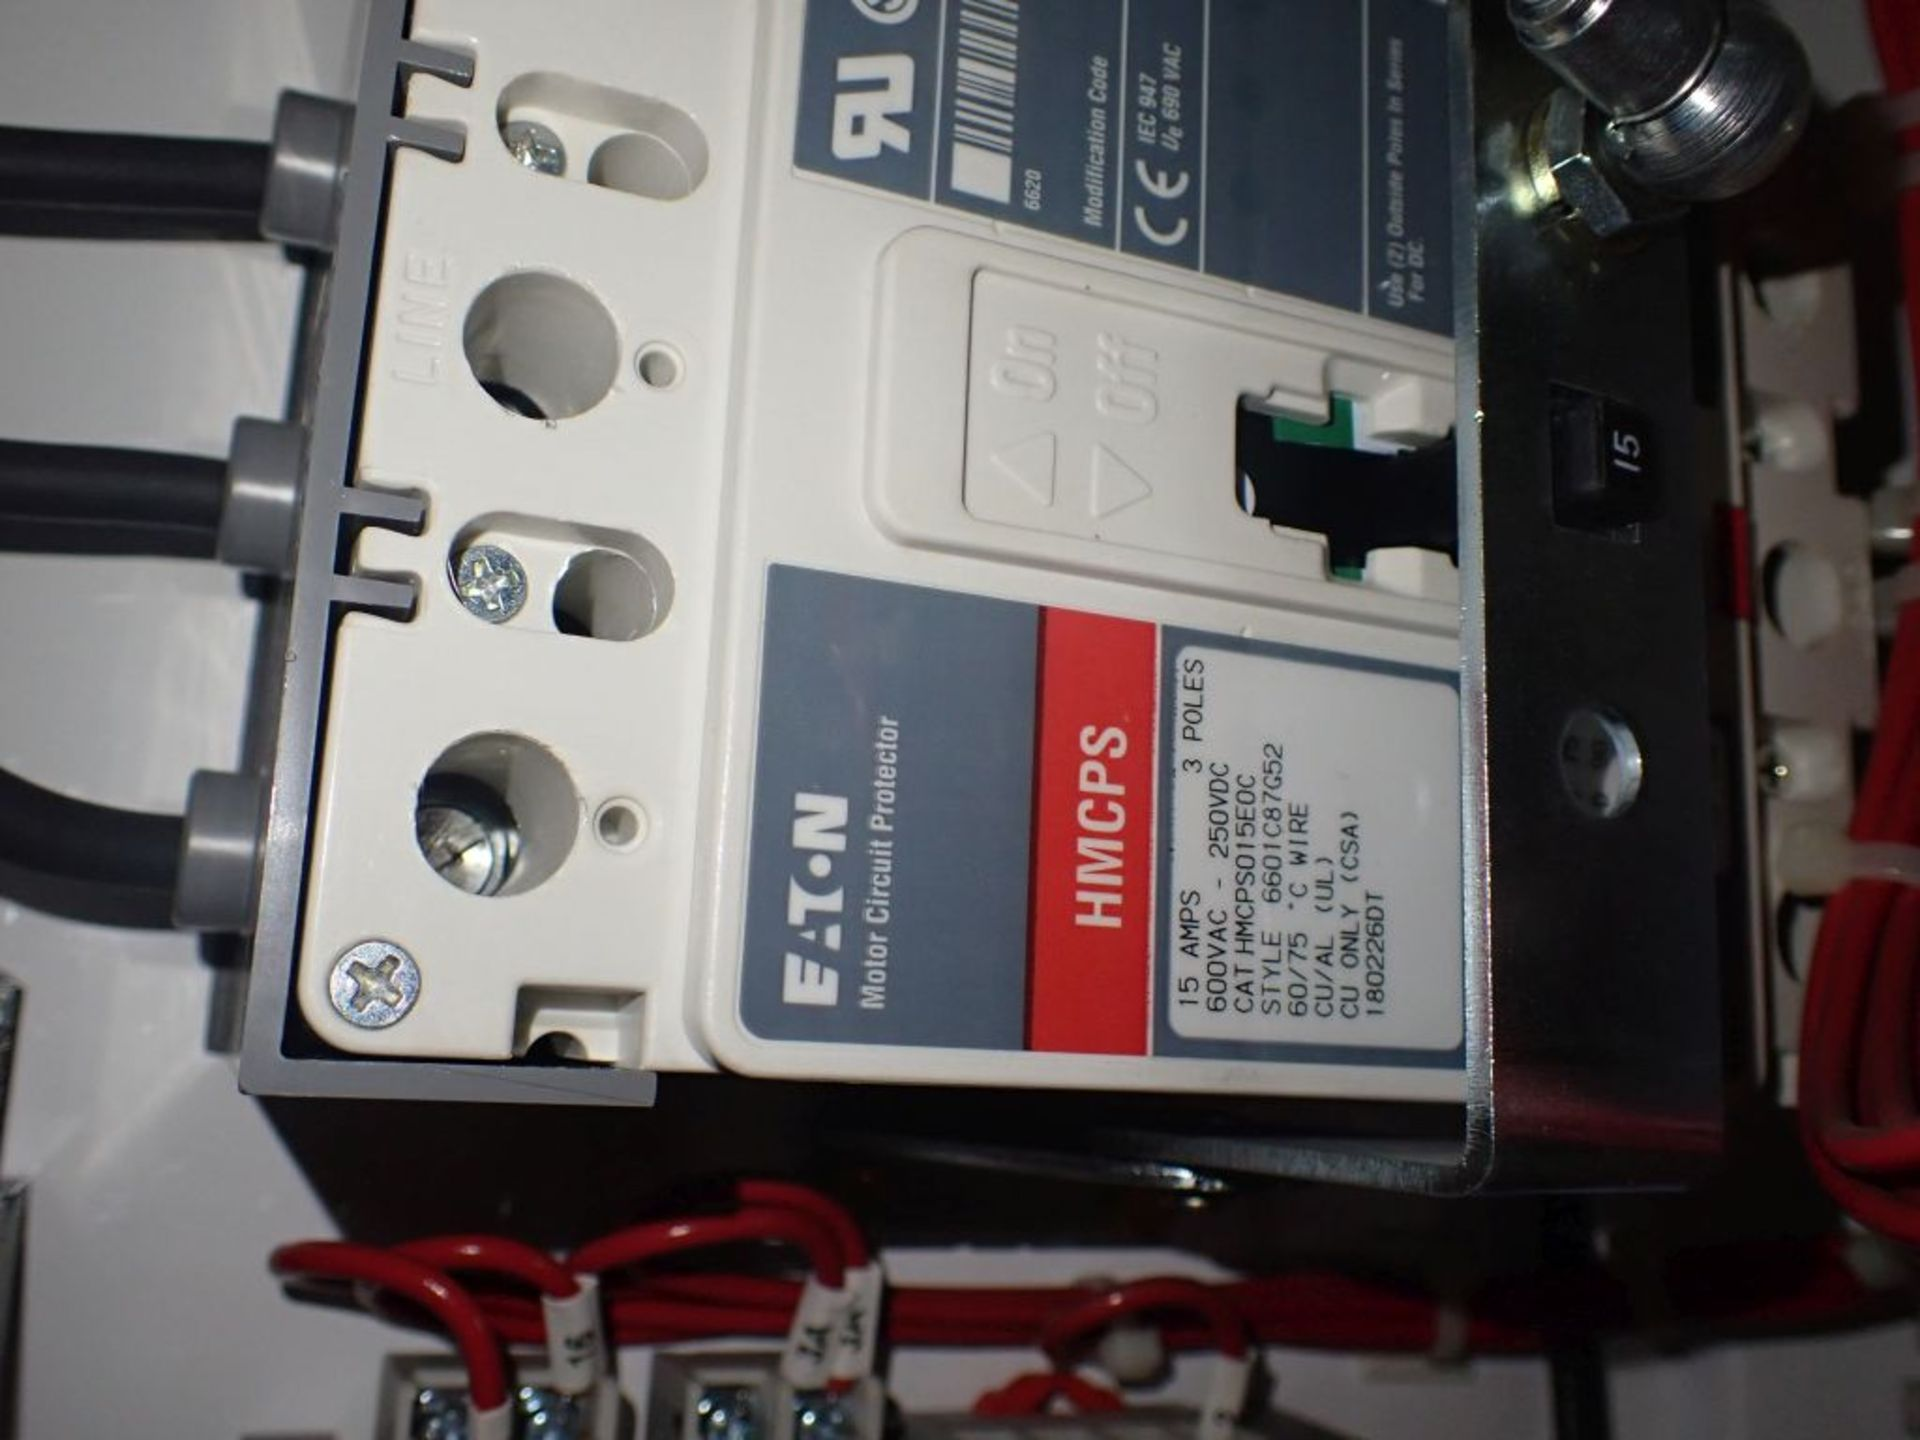 Eaton Freedom 2100 Series Motor Control Center | (2) F206-7A-10HP; (3) F206-15A-10HP; (1) FDRB-100A; - Image 70 of 87